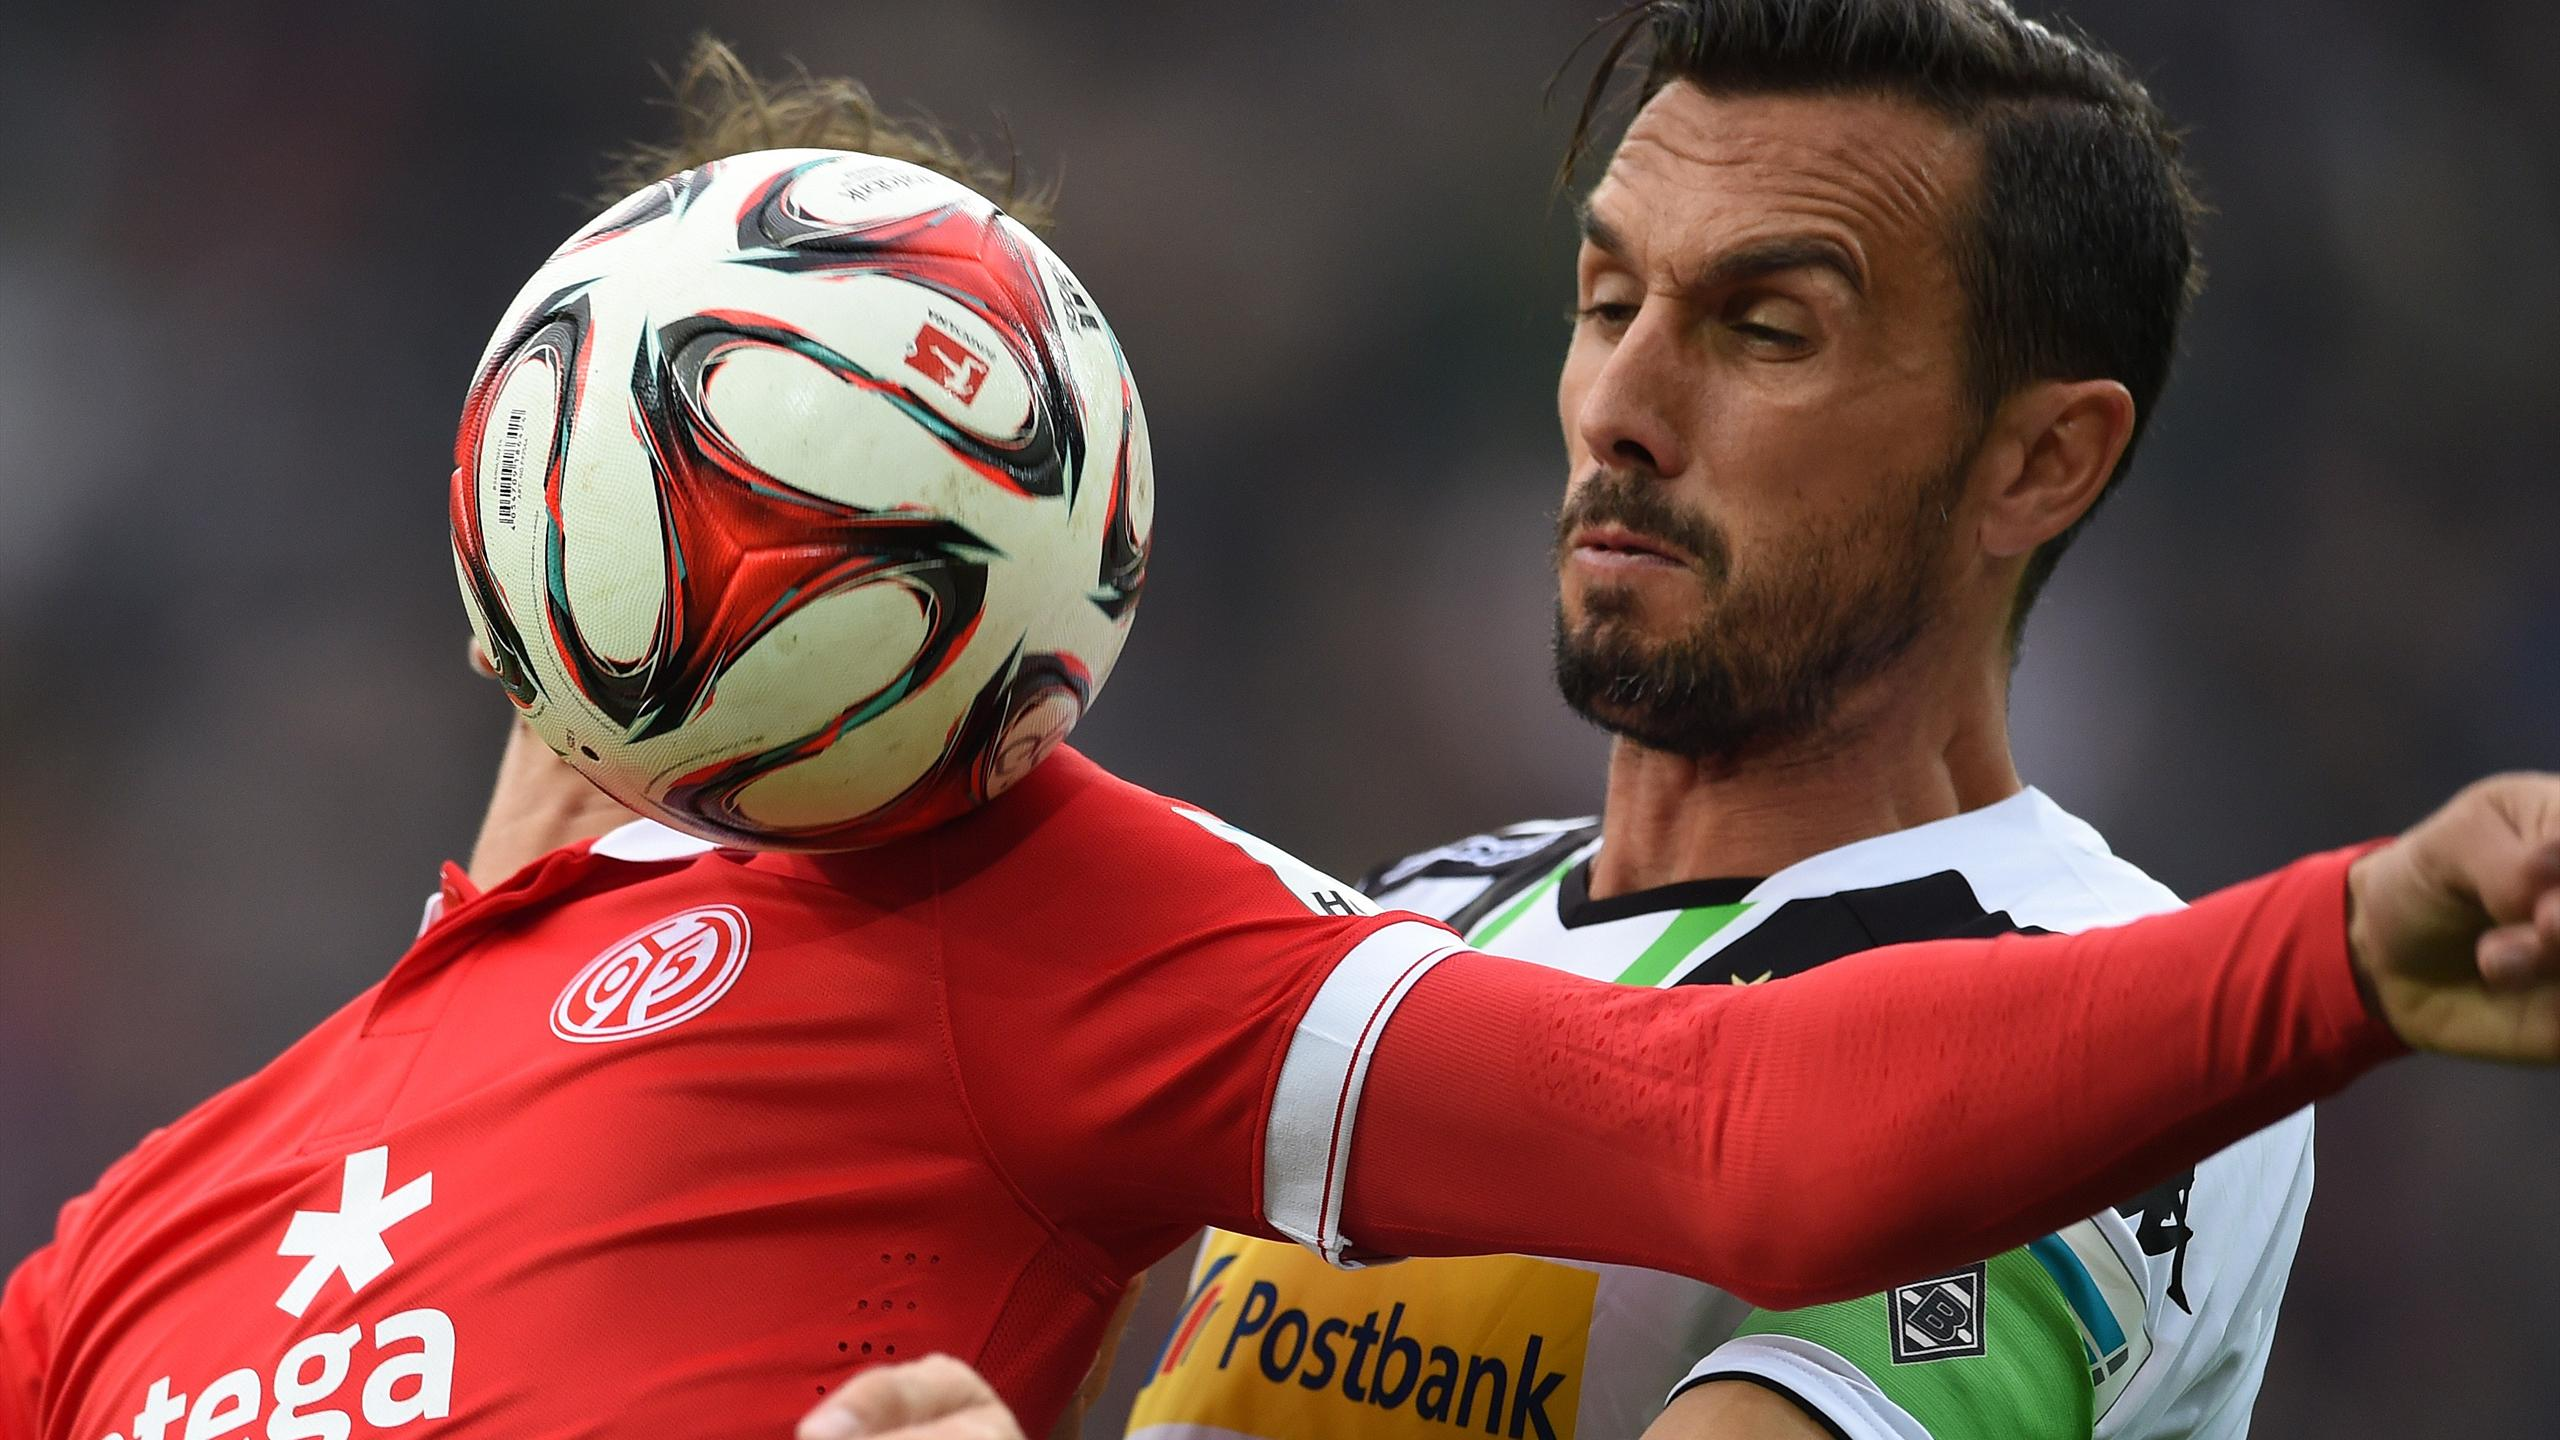 Video: Borussia M gladbach vs Mainz 05